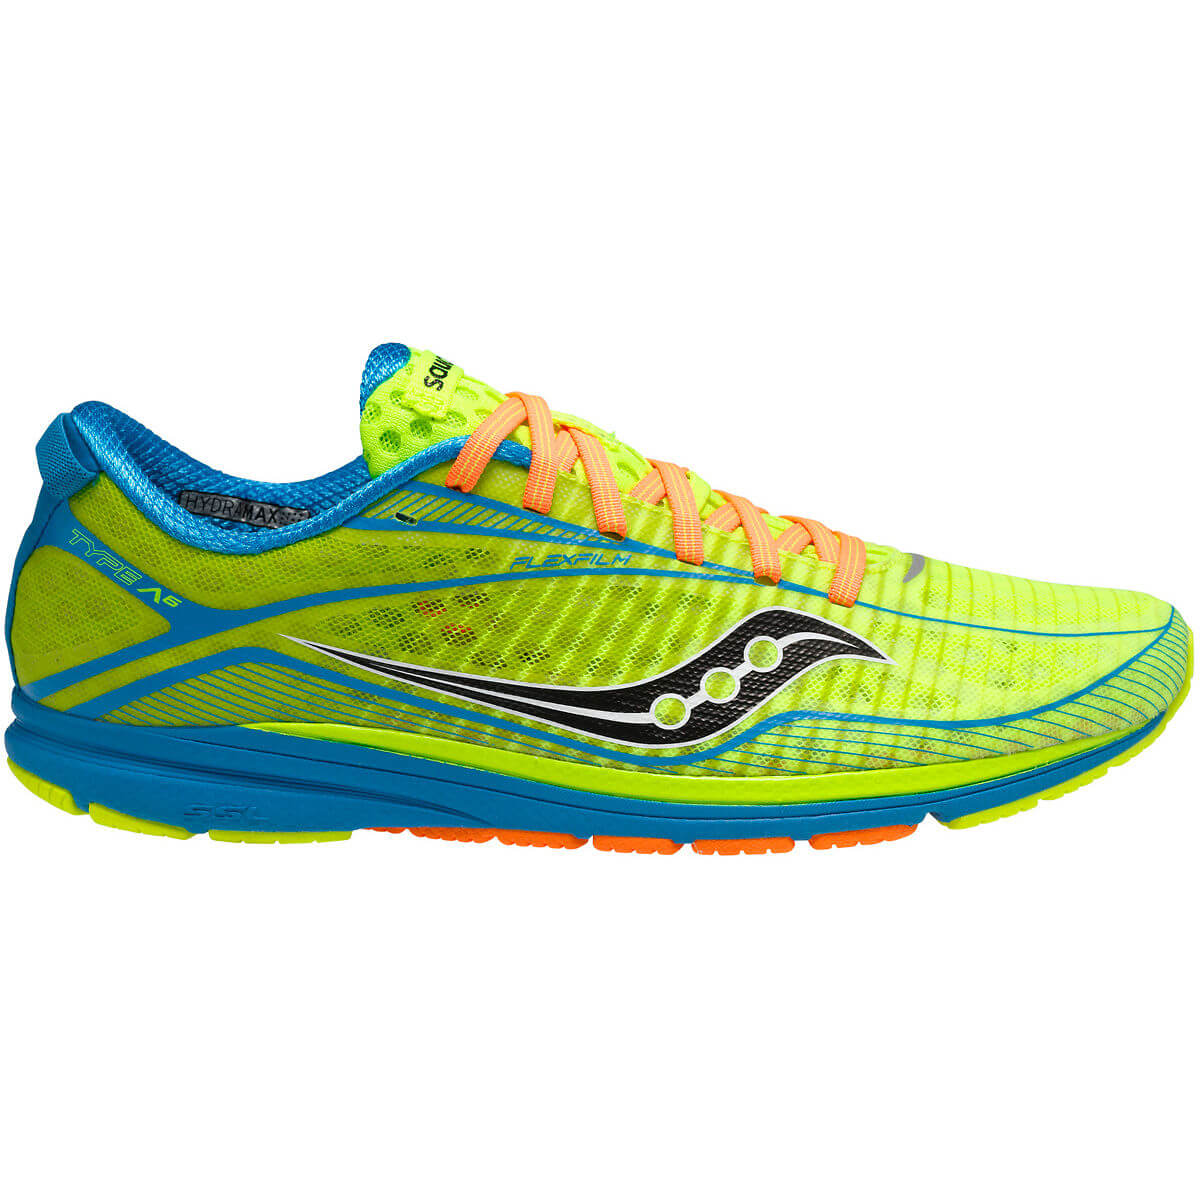 7.  Saucony Type A6